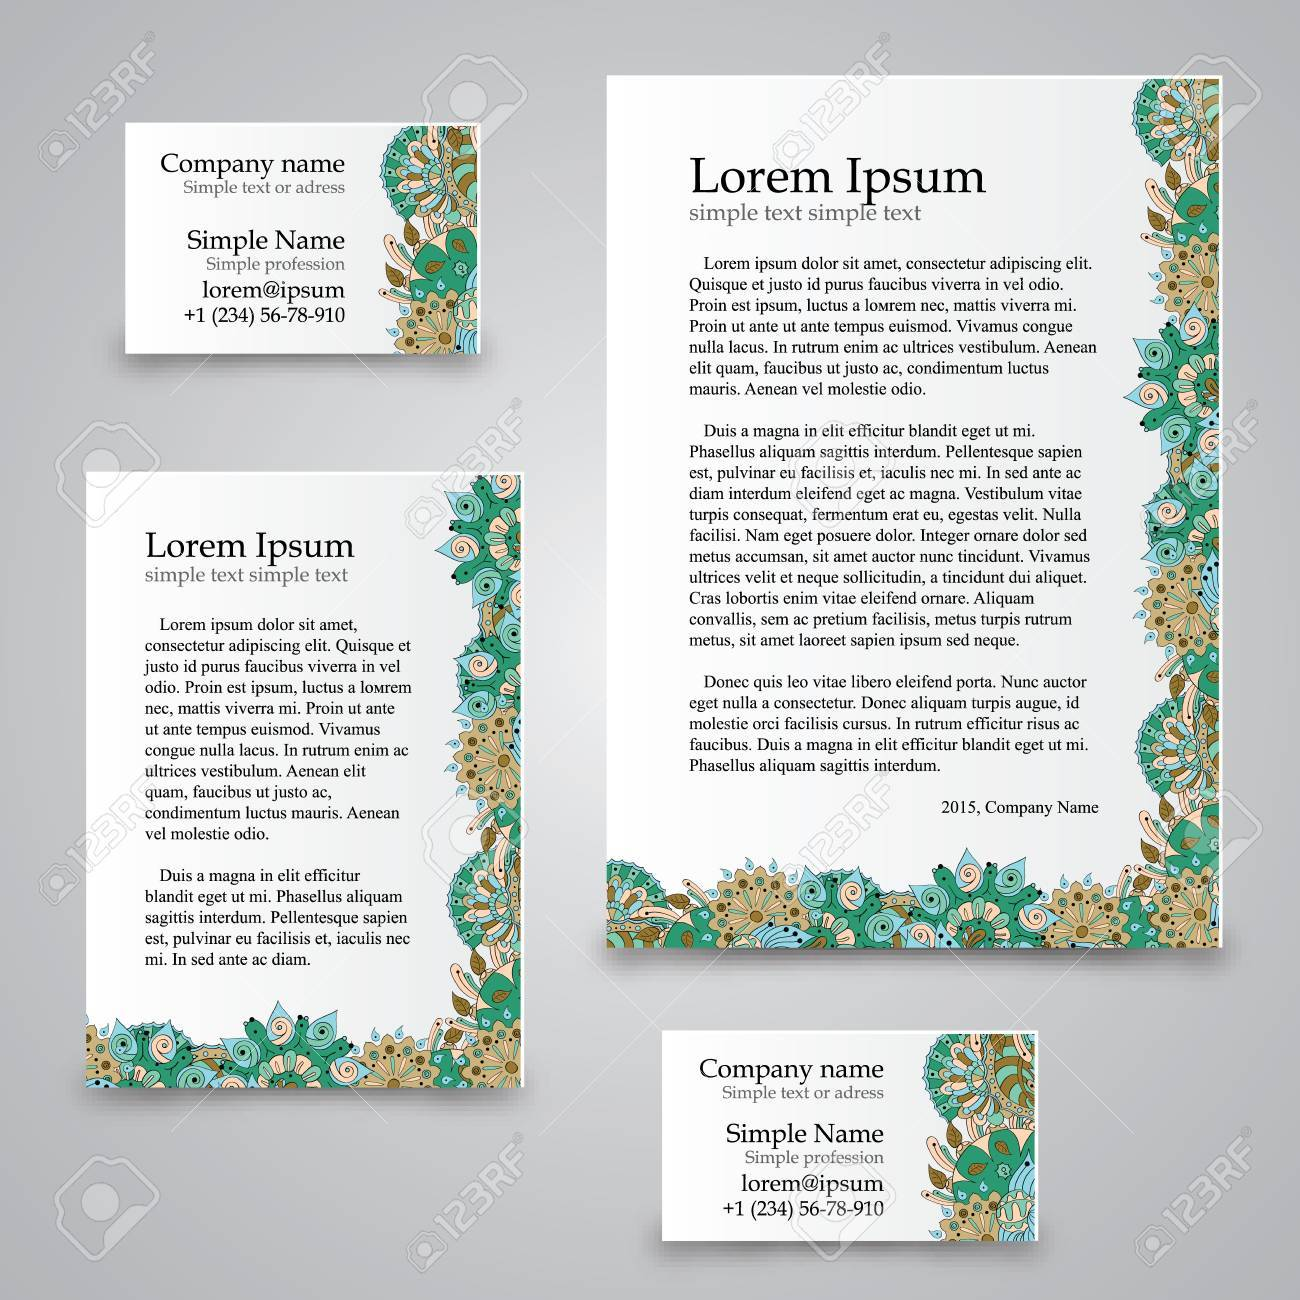 Wedding officiant business cards images free business cards ordained minister business cards gallery free business cards handmade business cards images free business cards business magicingreecefo Images